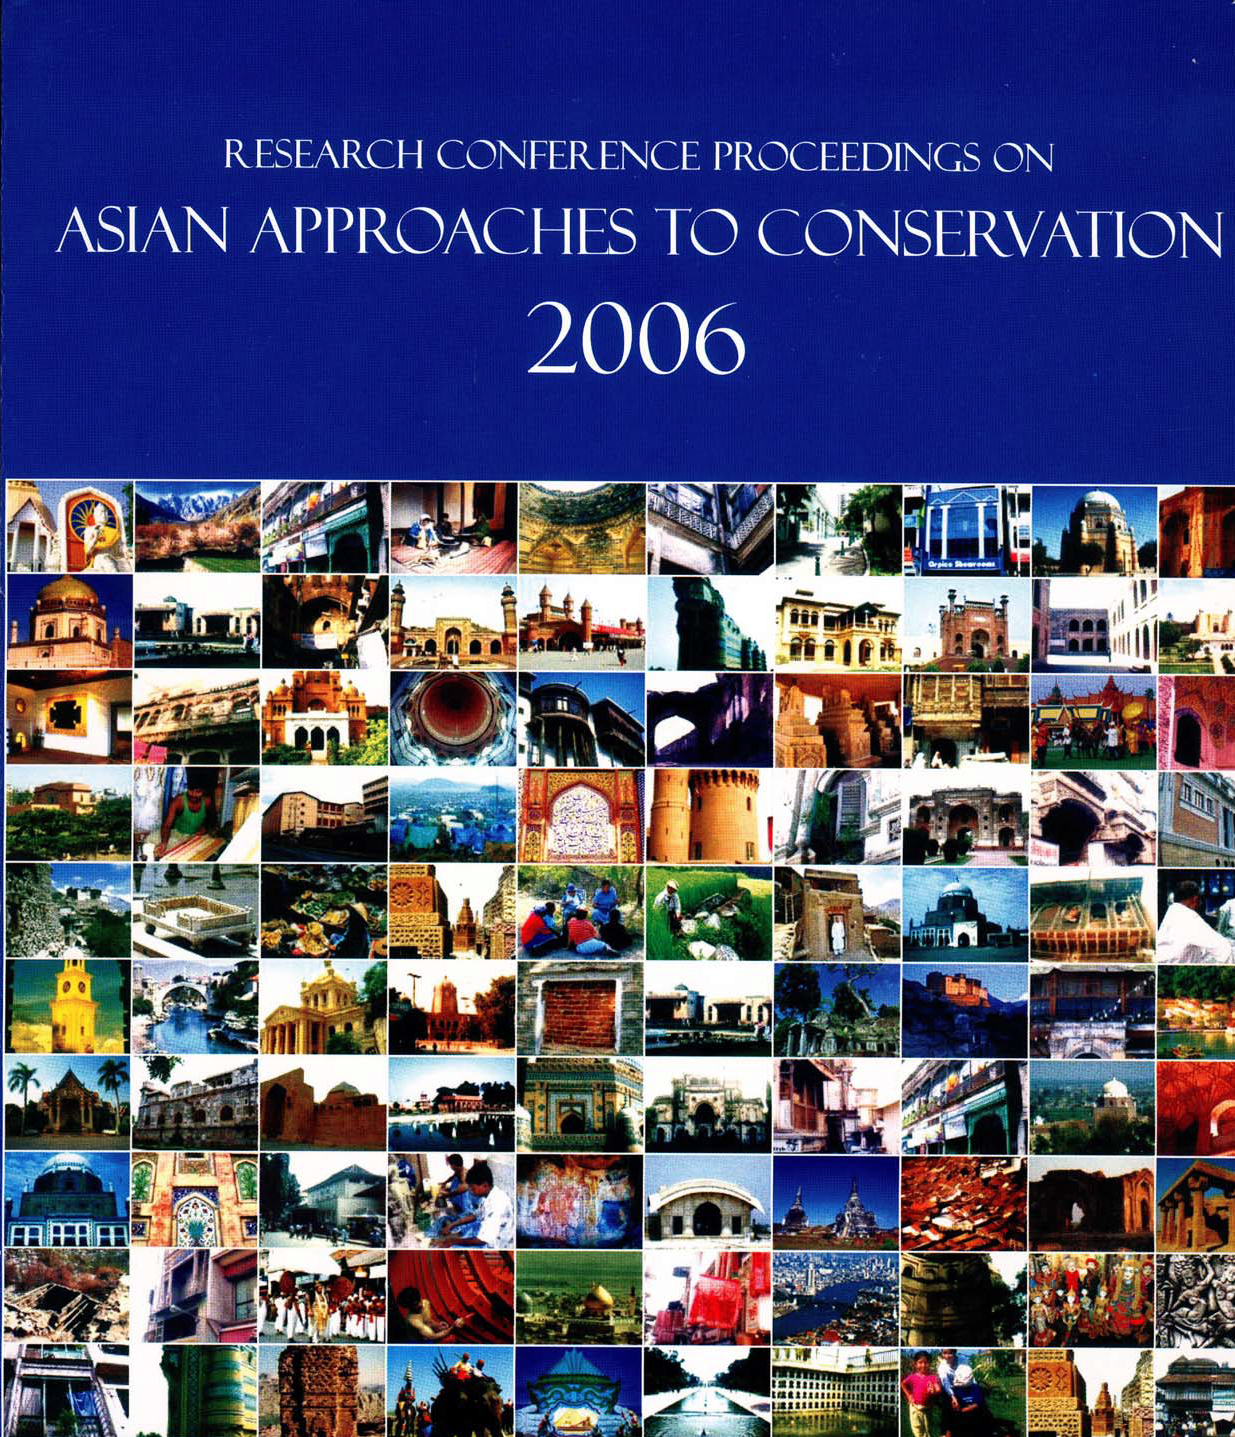 Research Conference Proceedings on Asian Approaches to Conservation